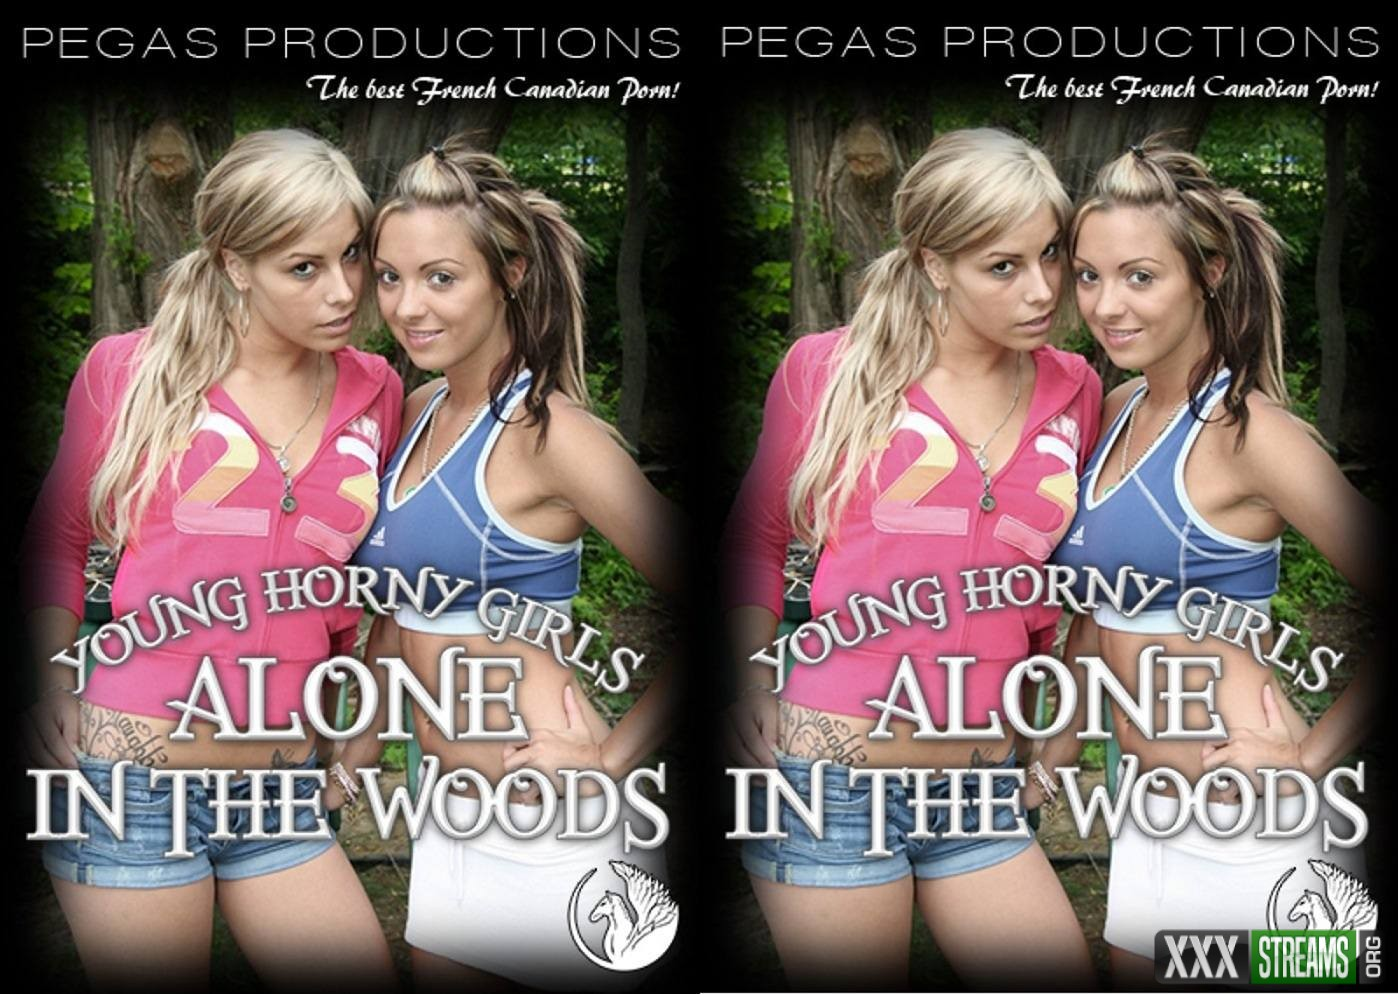 Young_Horny_Girls_Alone_in_the_Woods_full0fb50ded4d554a30.jpg